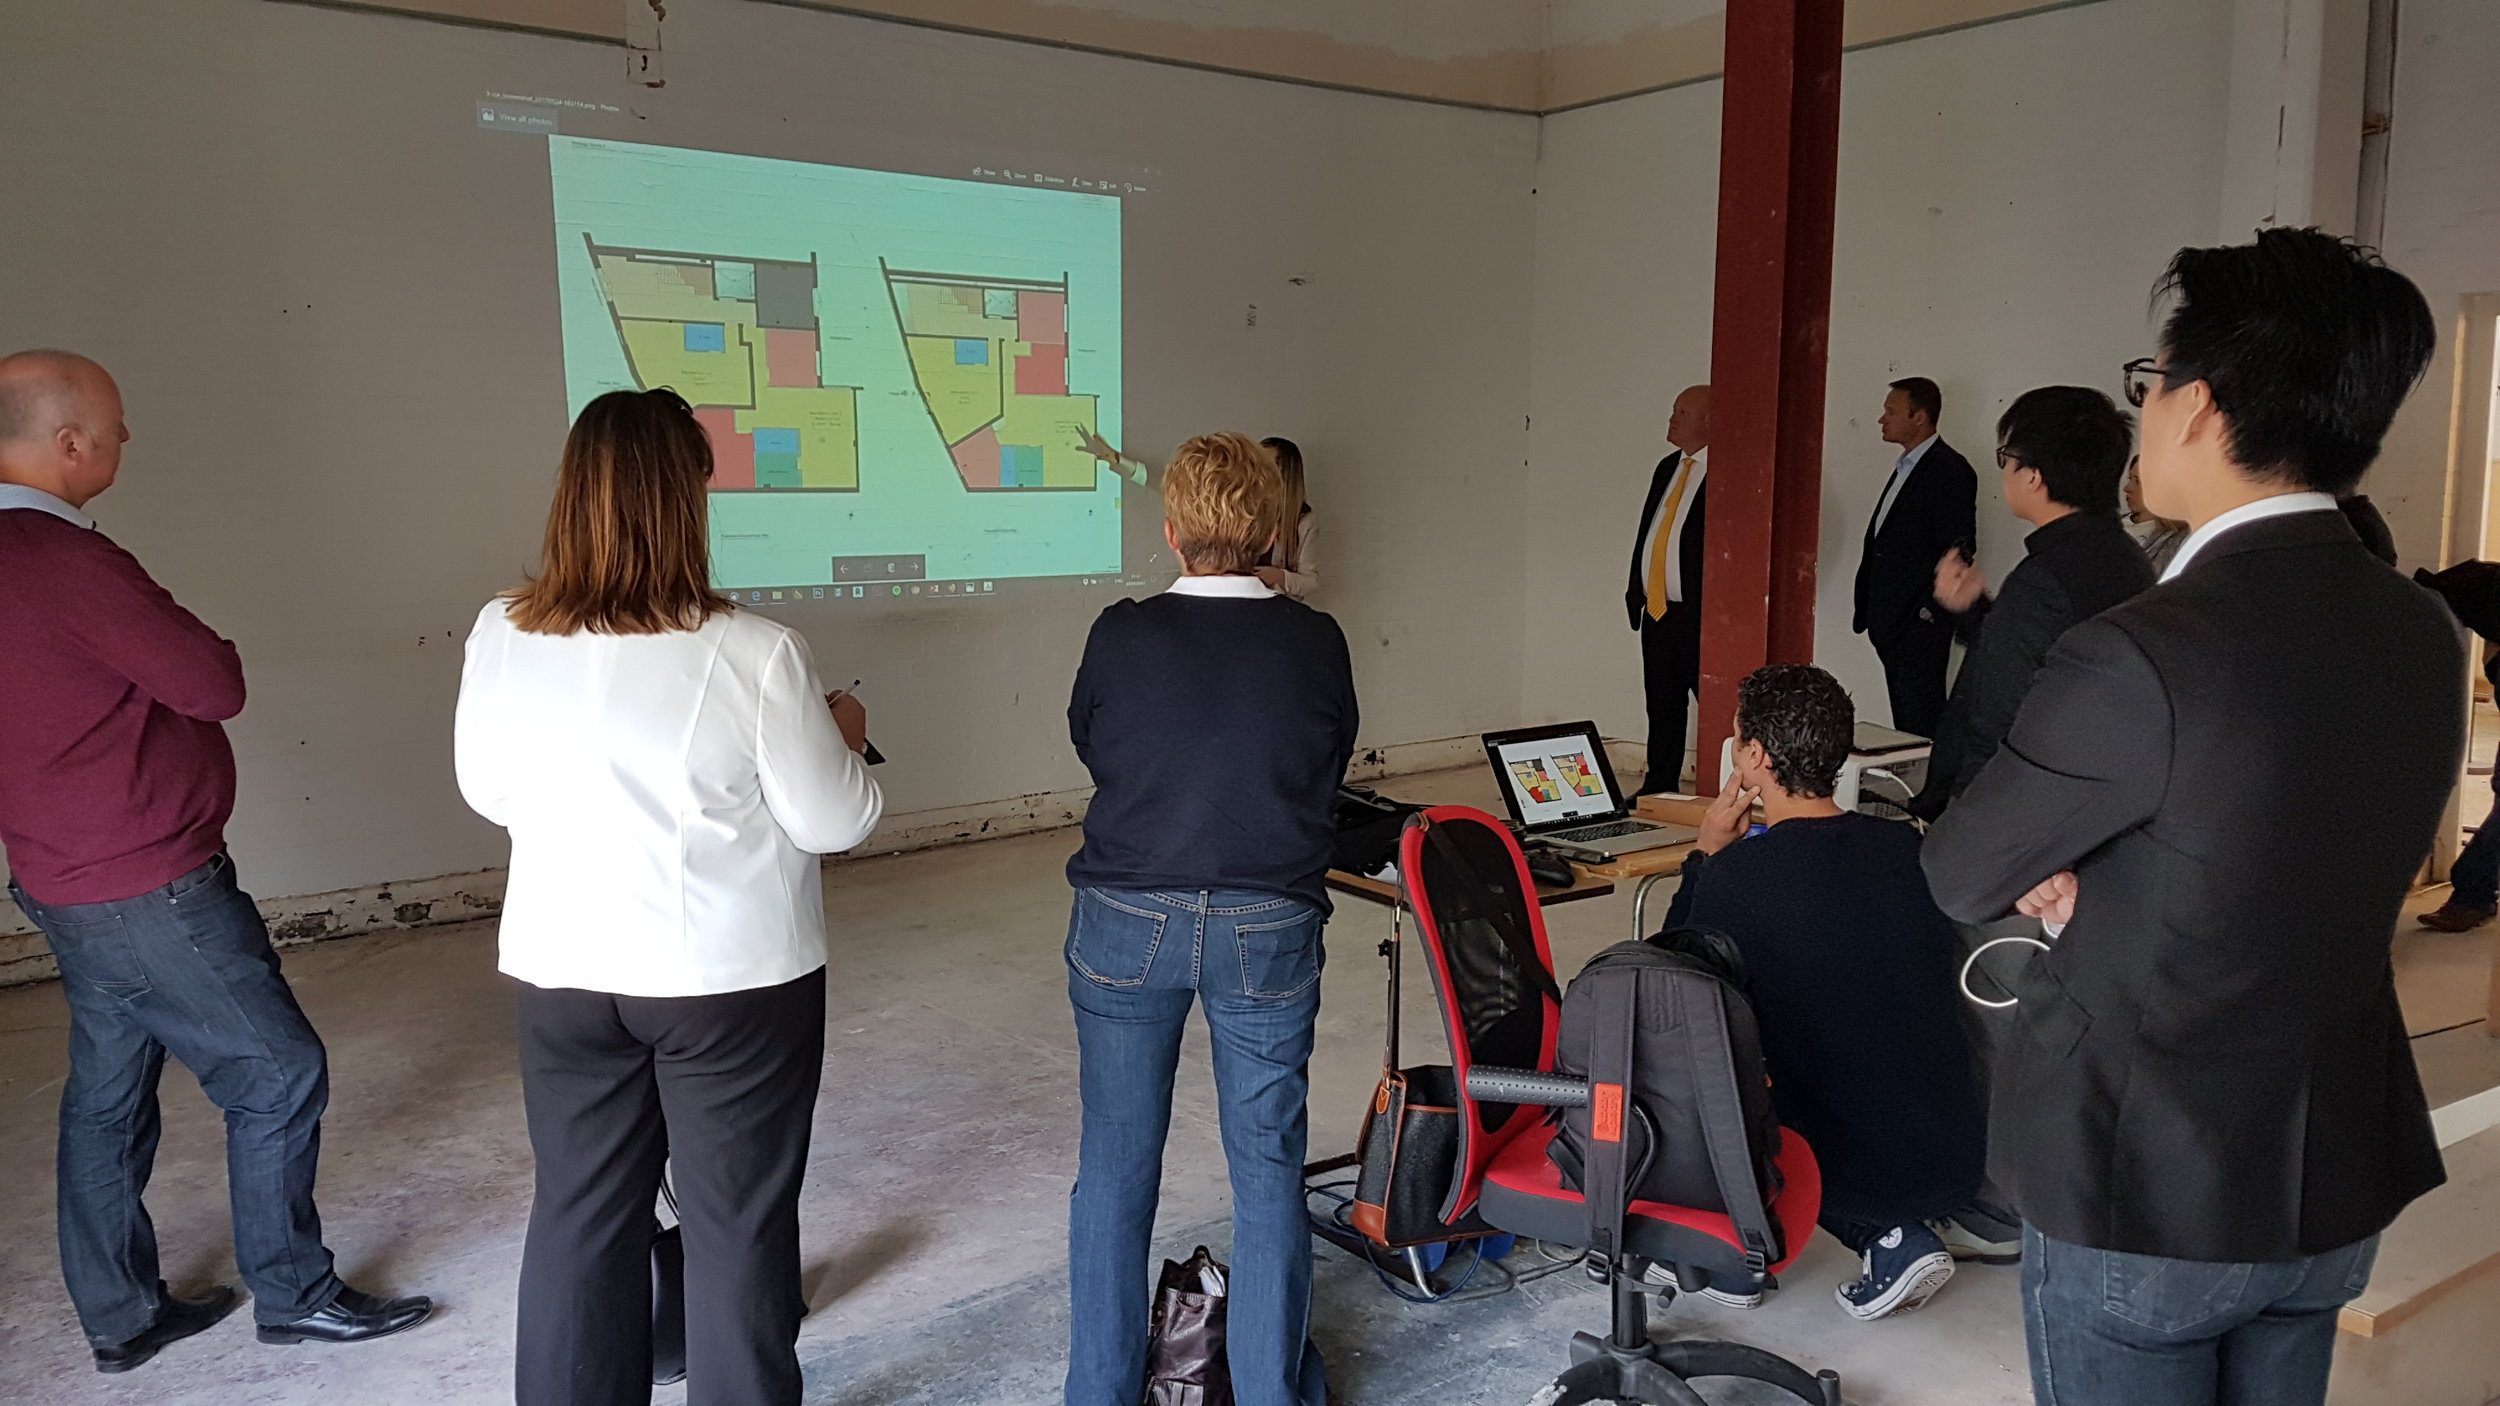 Presentation to an audience of property investors, project managers and finance experts